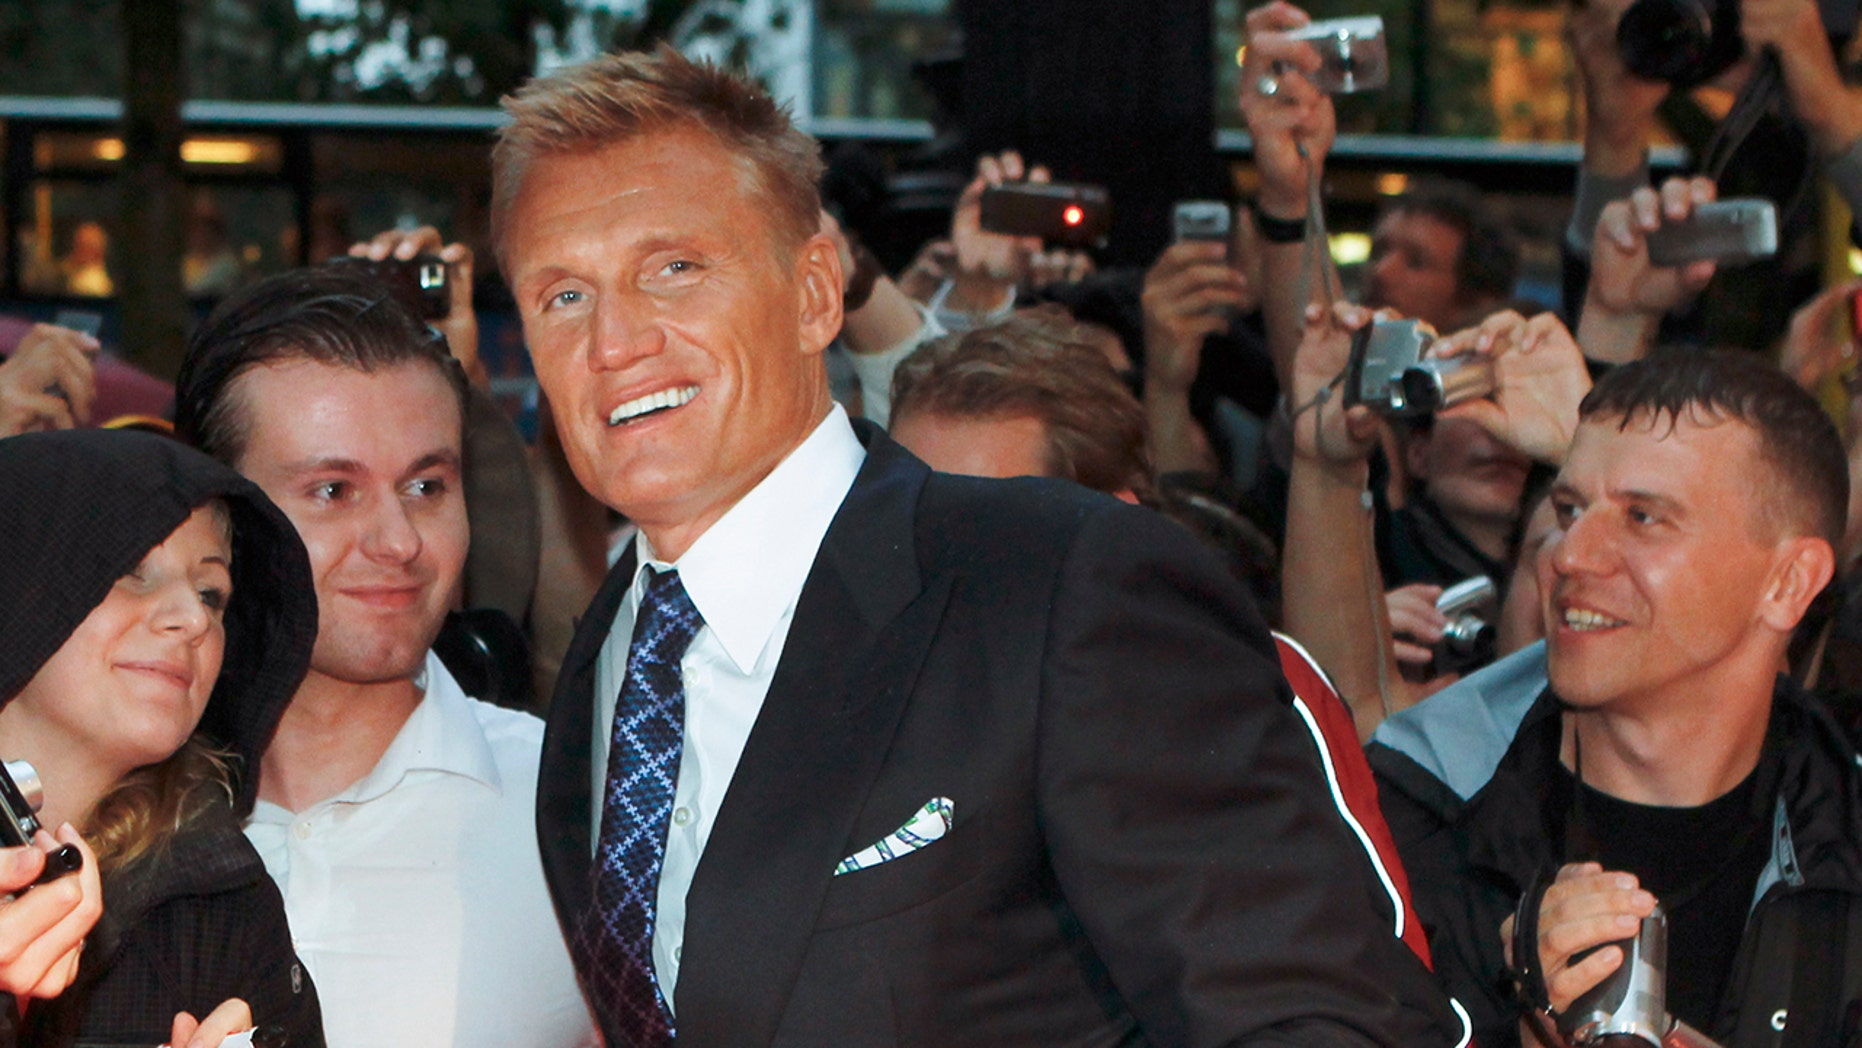 Dolph Lundgren, nemesis of Rocky Balboa and fitness enthusiast, gives his five top tips to starting a fitness regime that sticks.